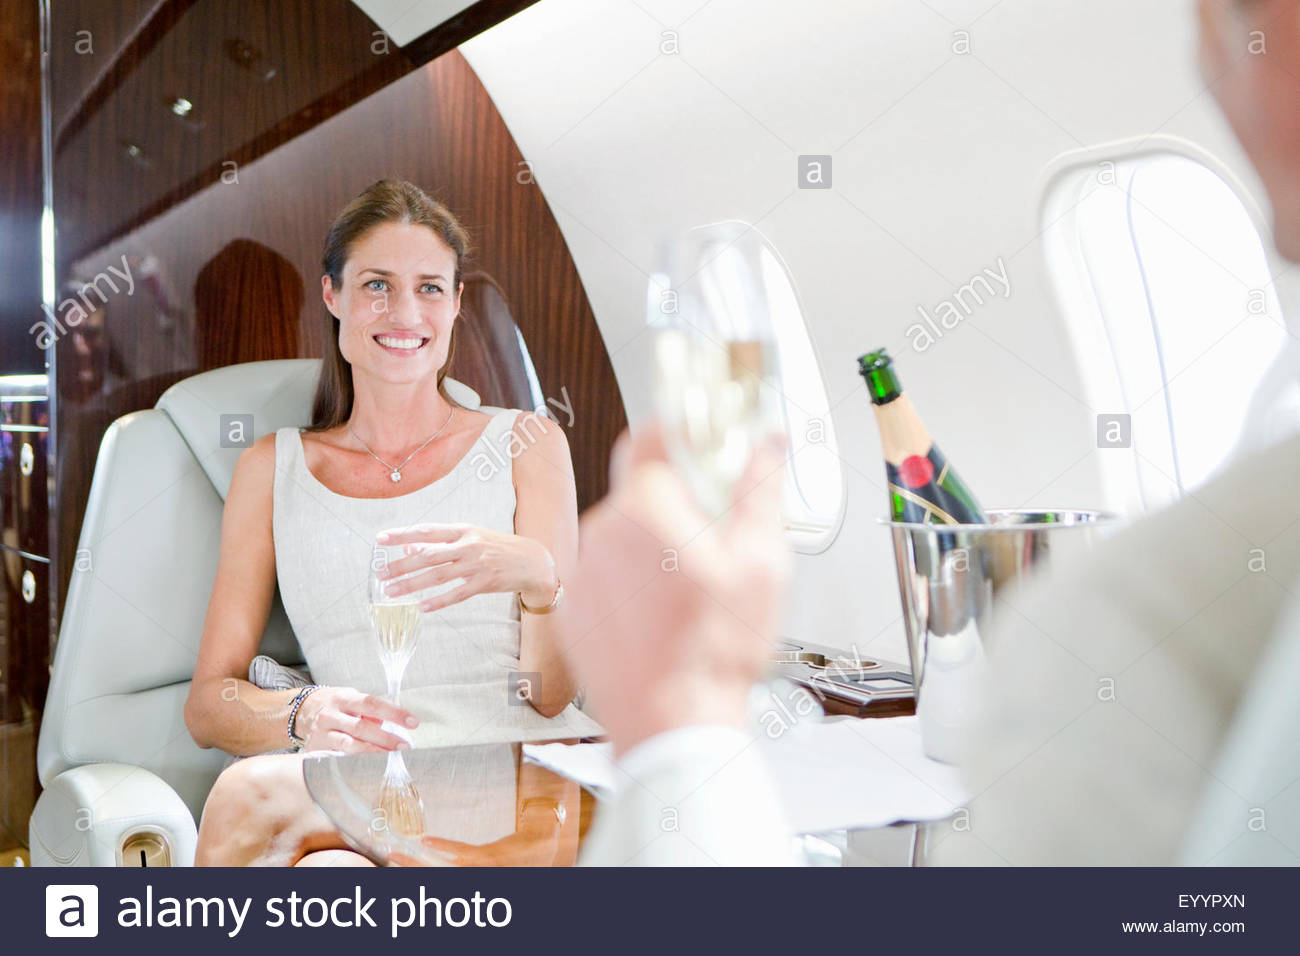 Belle smiling couple drinking champagne on private jet Photo Stock